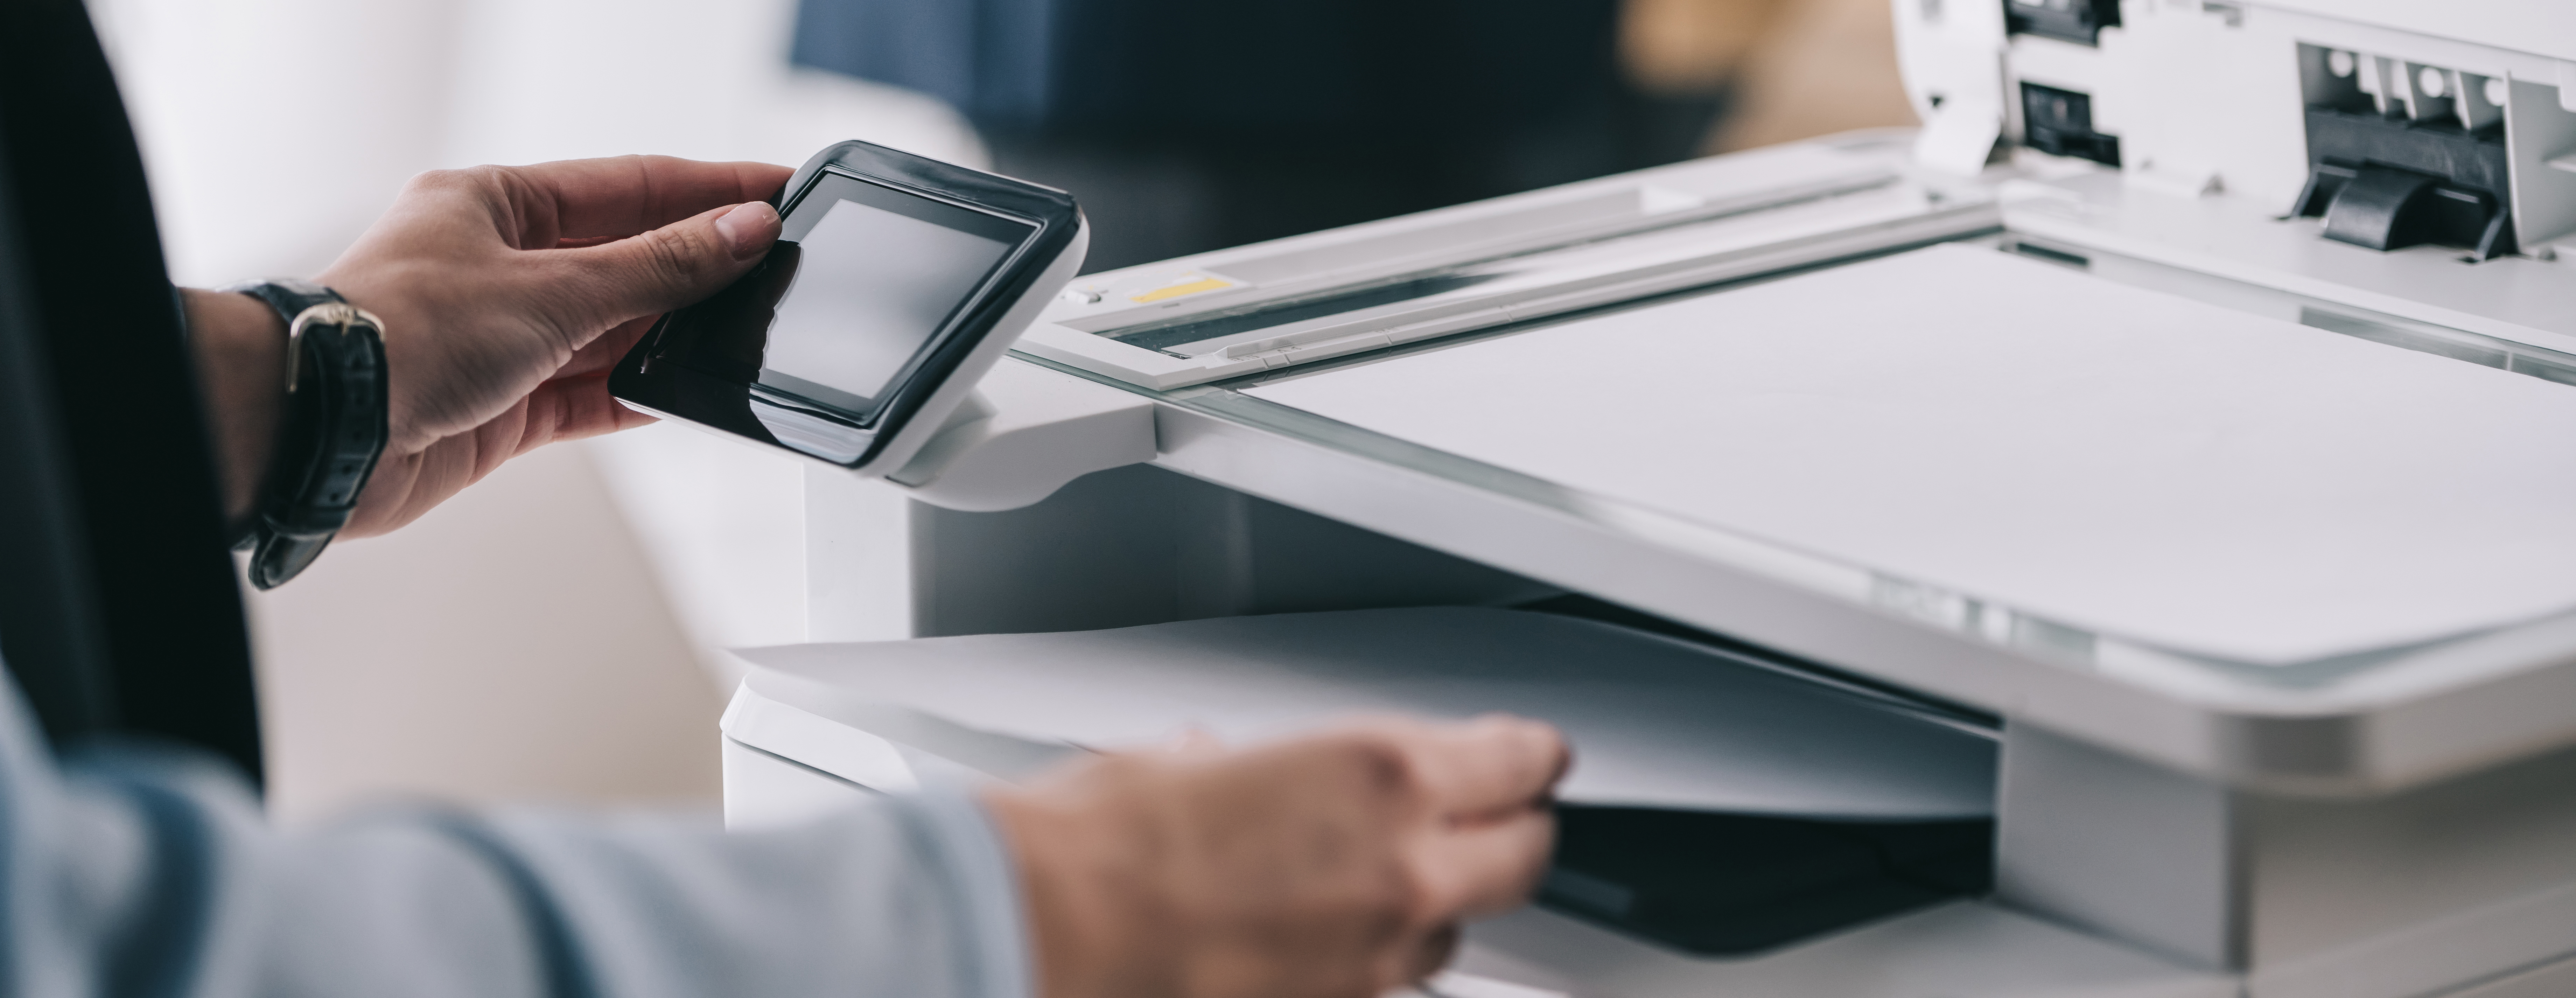 woman at office printer secure